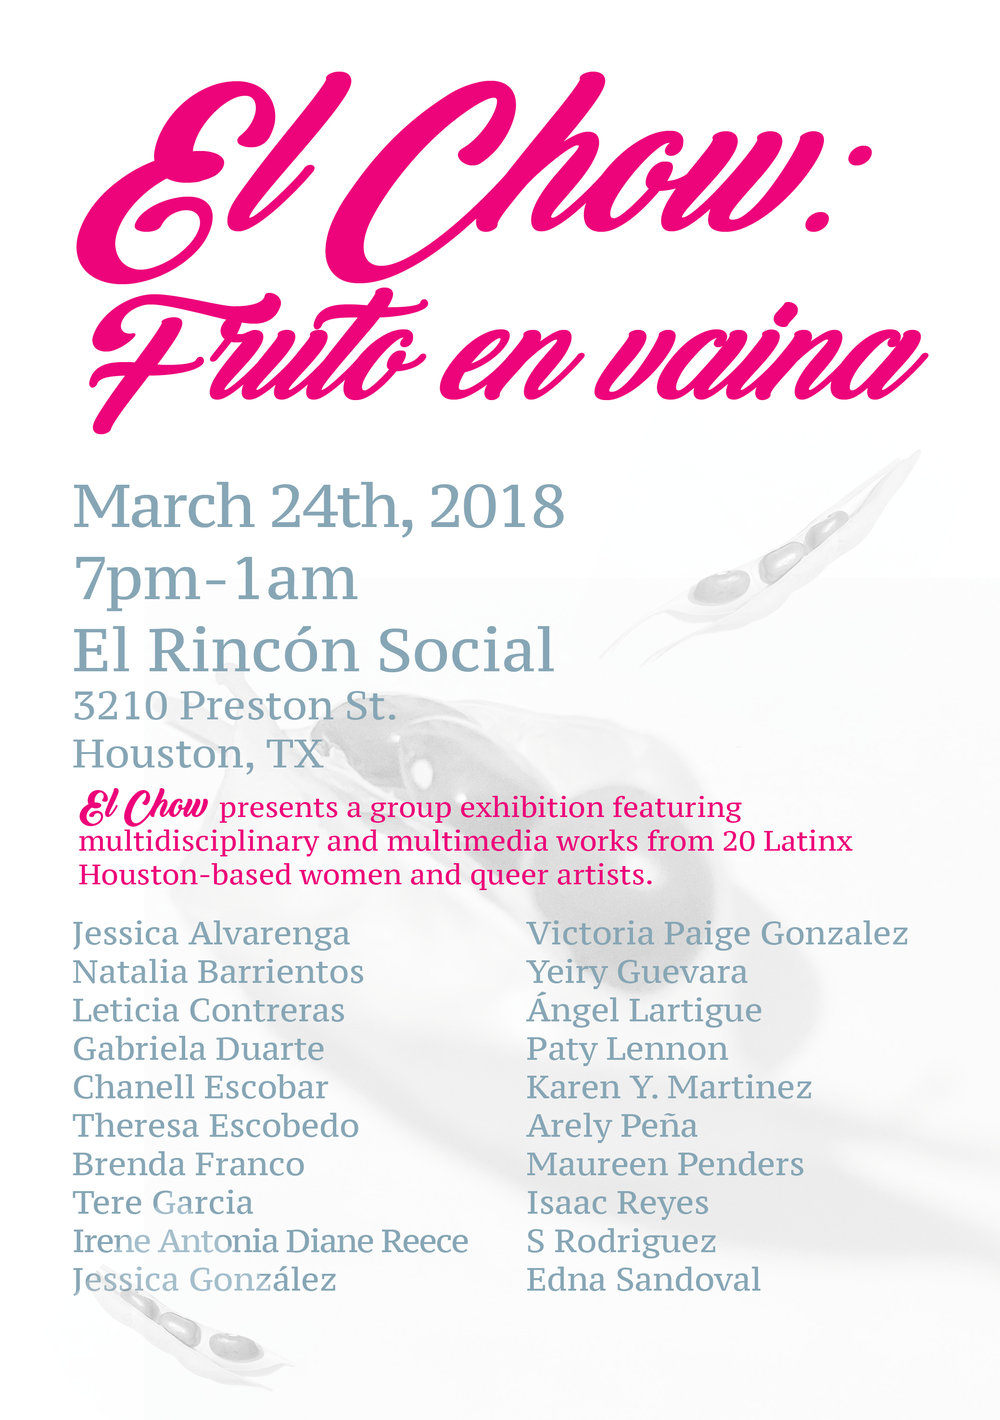 Event Flyer for El Chow: Fruto en Vaina